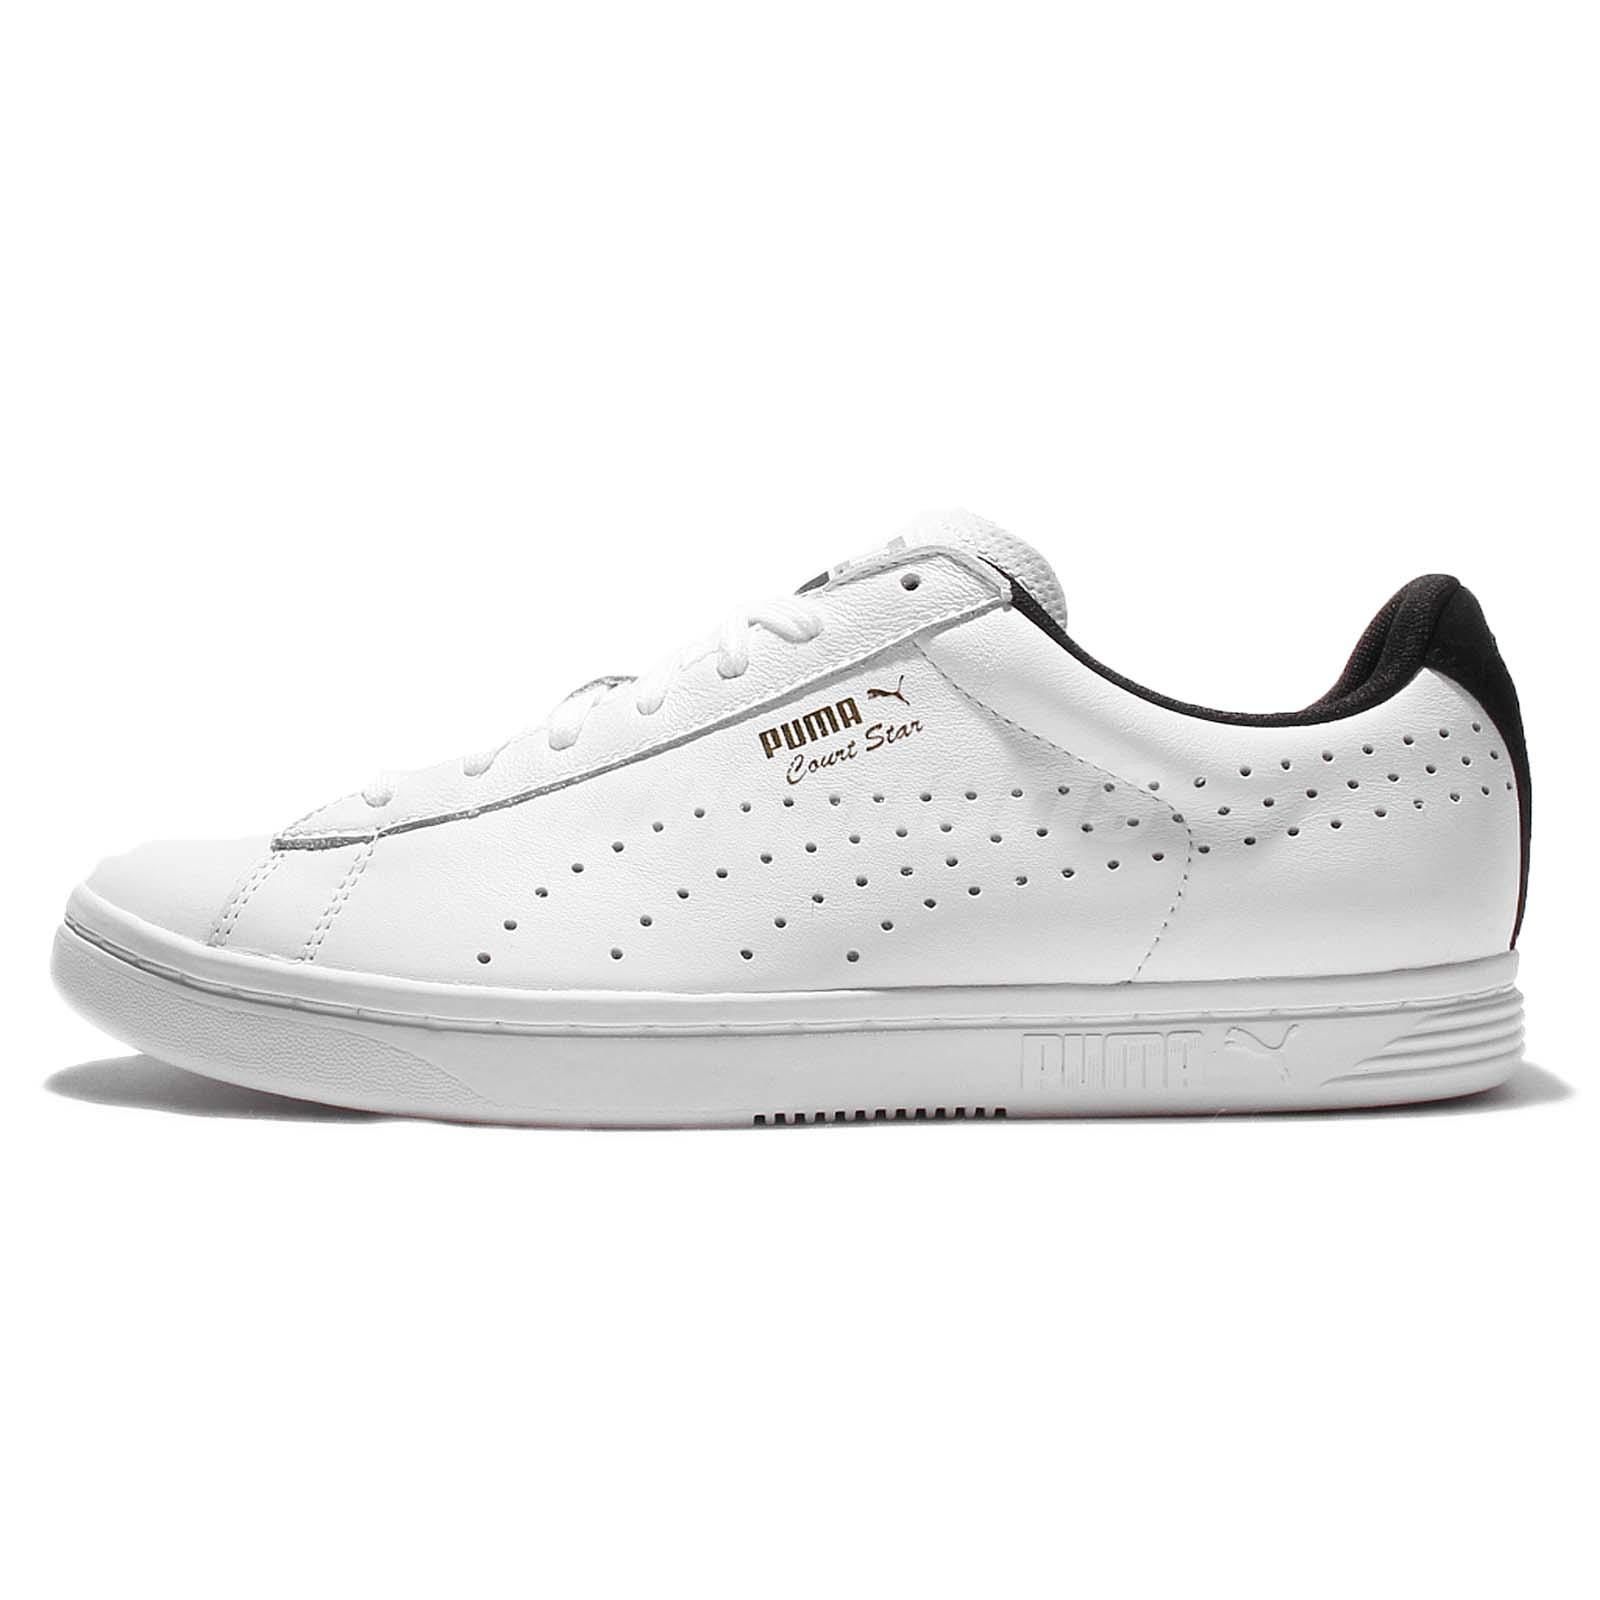 brand new 82d6a a3f00 Details about Puma Court Star CRFTD Crafted White Black Mens Training Shoes  Trainers 359977-09